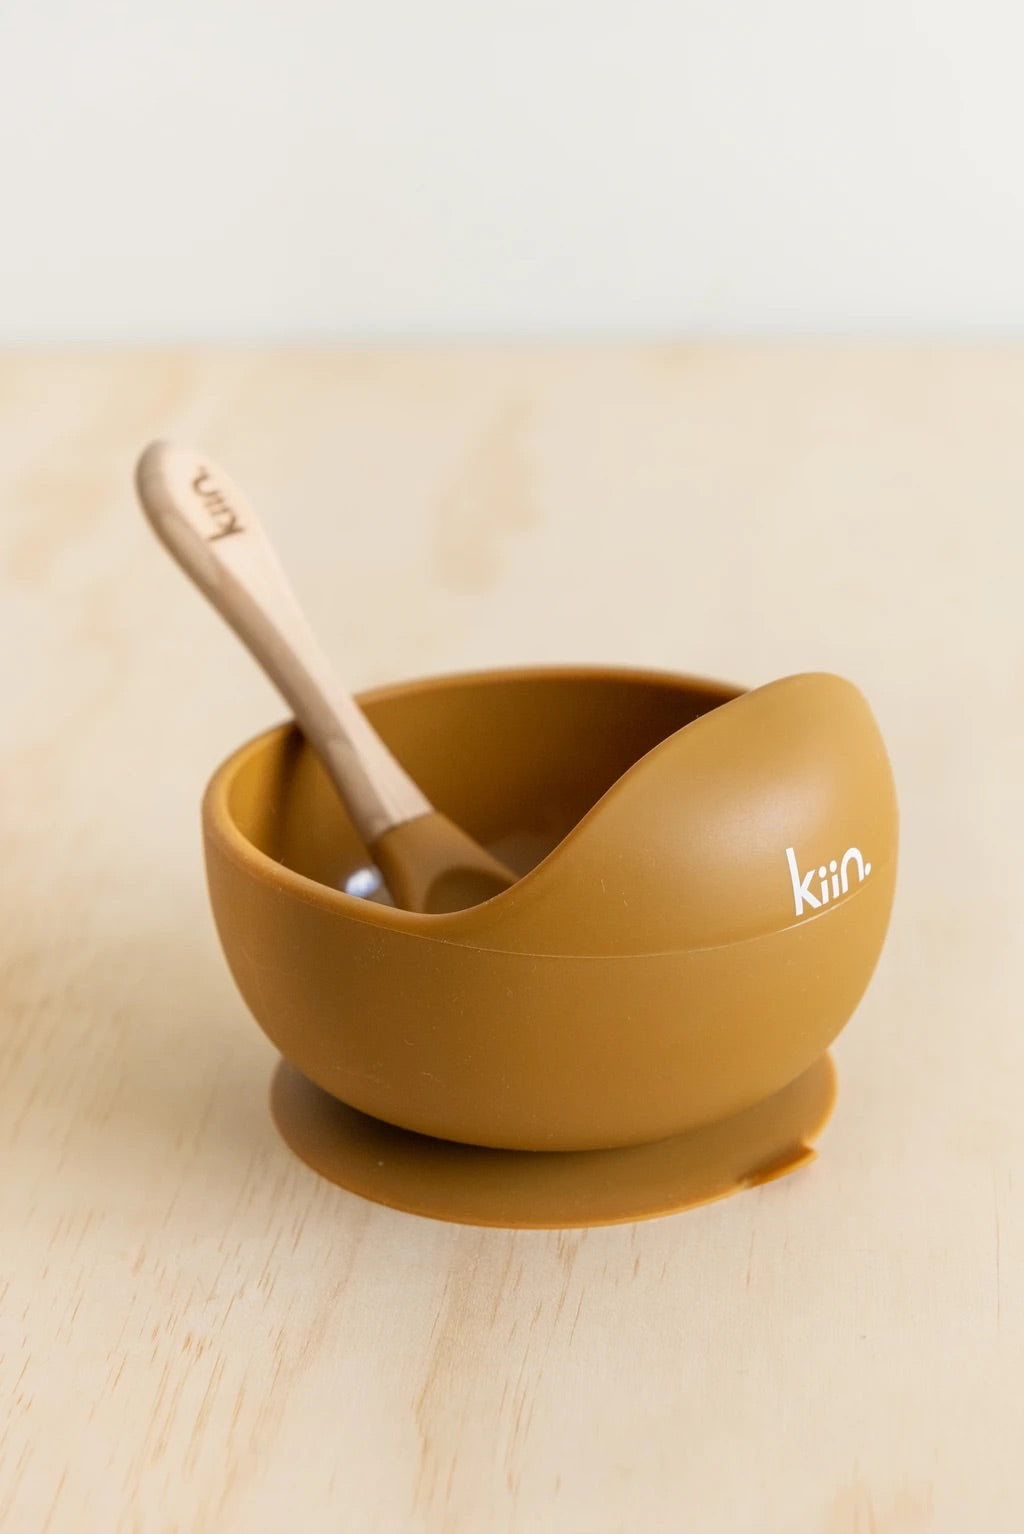 Kiin Bowl and Spoon Set - Caramel